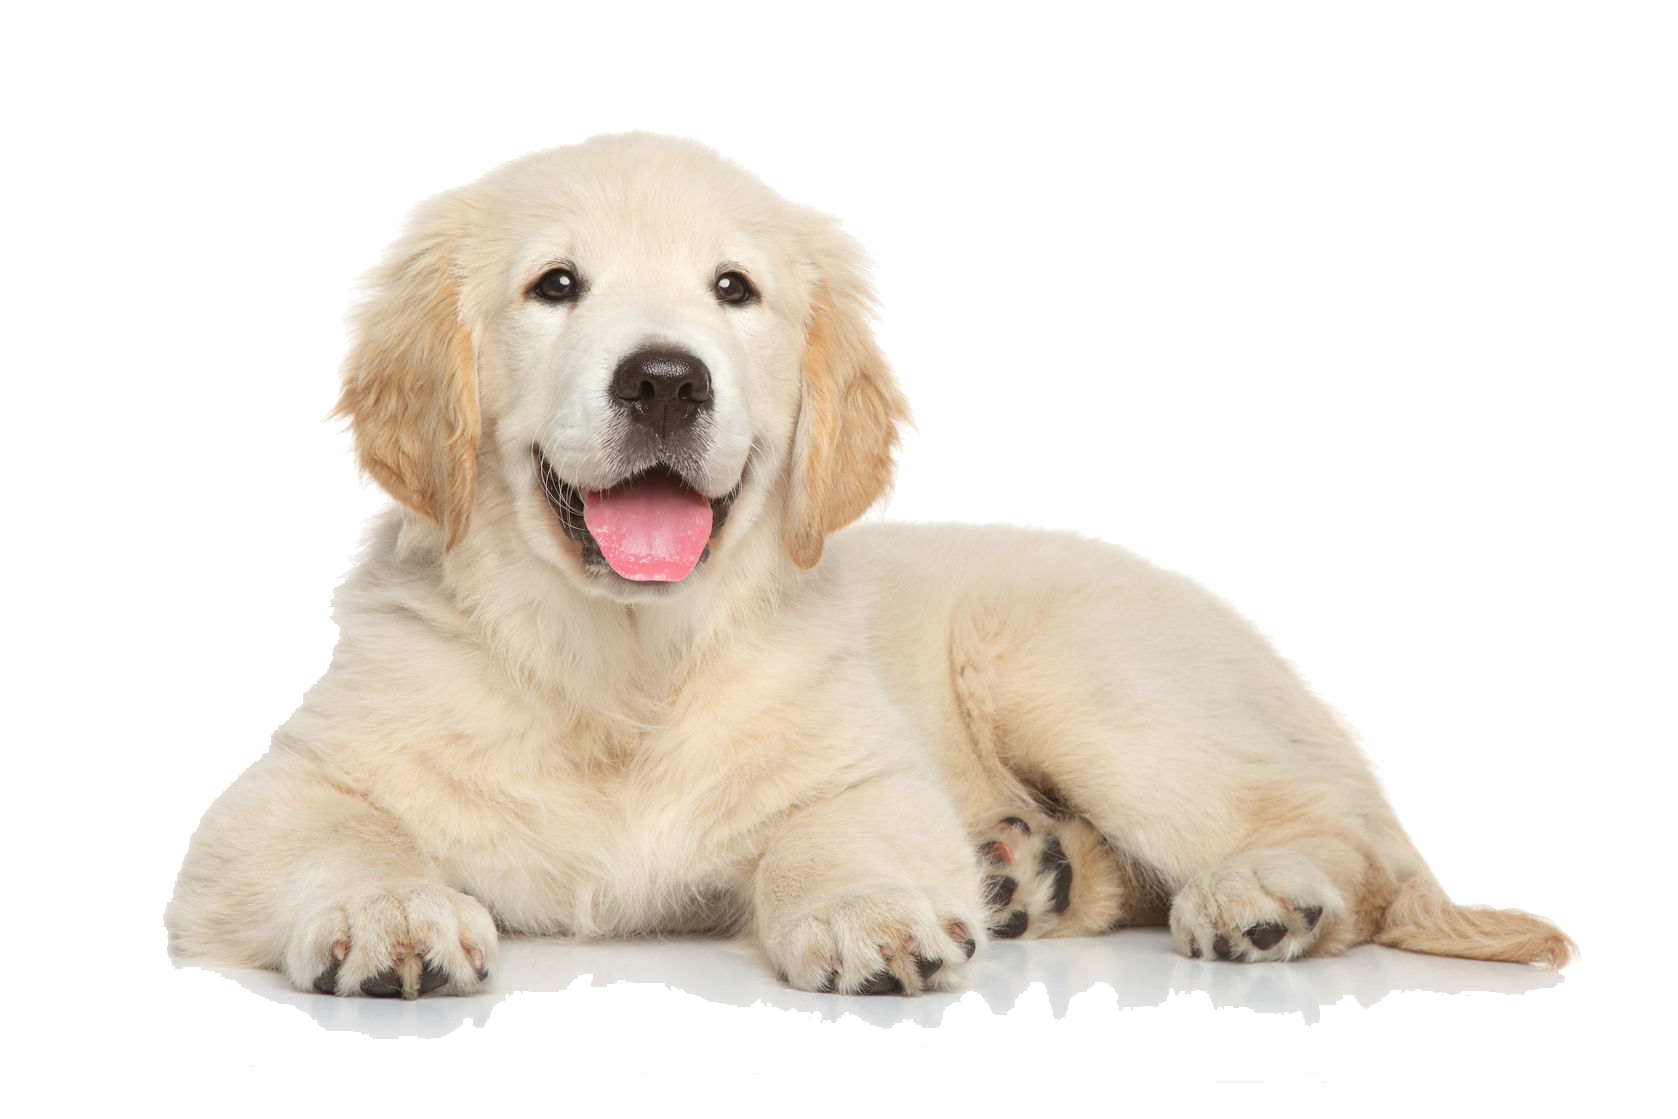 Golden retriever dog clipart graphic library 28+ Collection of Golden Retriever Clipart Transparent | High ... graphic library